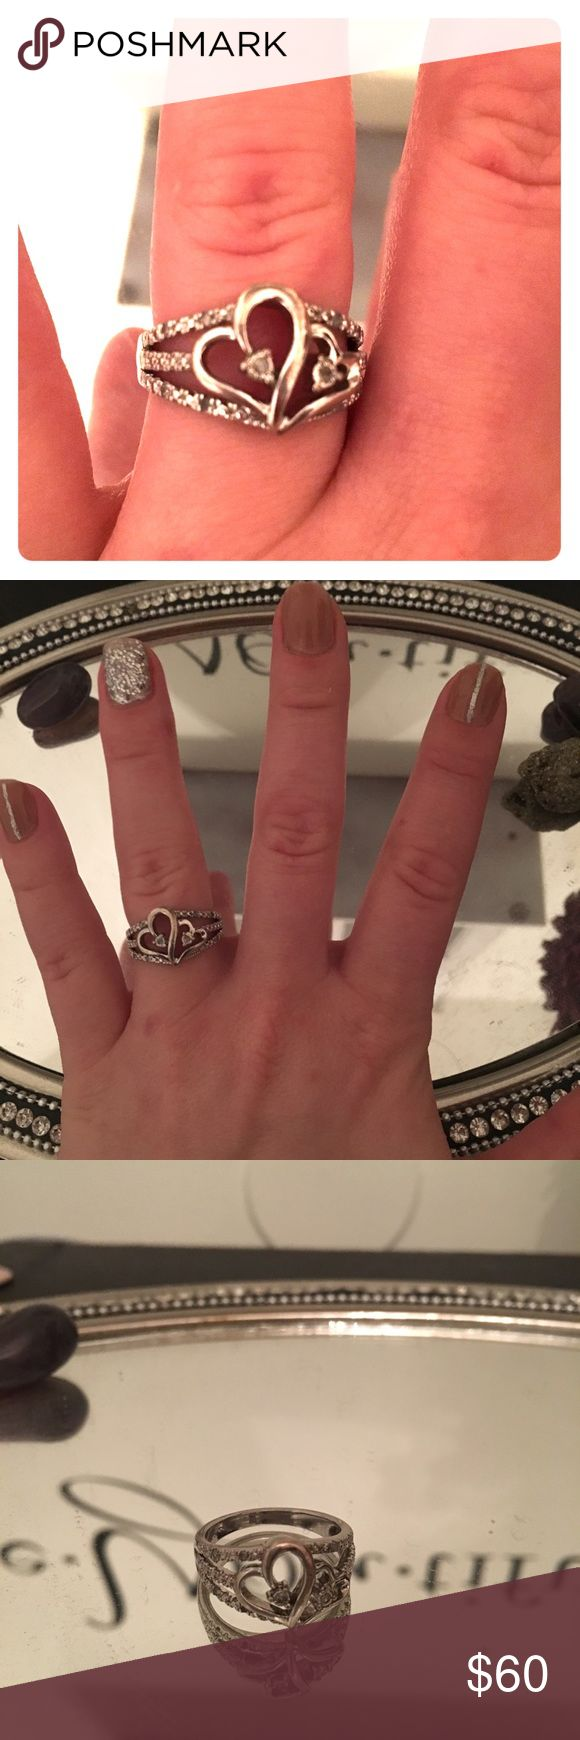 Diamond heart ring Size 7 diamond heart ring. Looks brand new no scratches or dings all diamonds accounted for Nordstrom Jewelry Rings